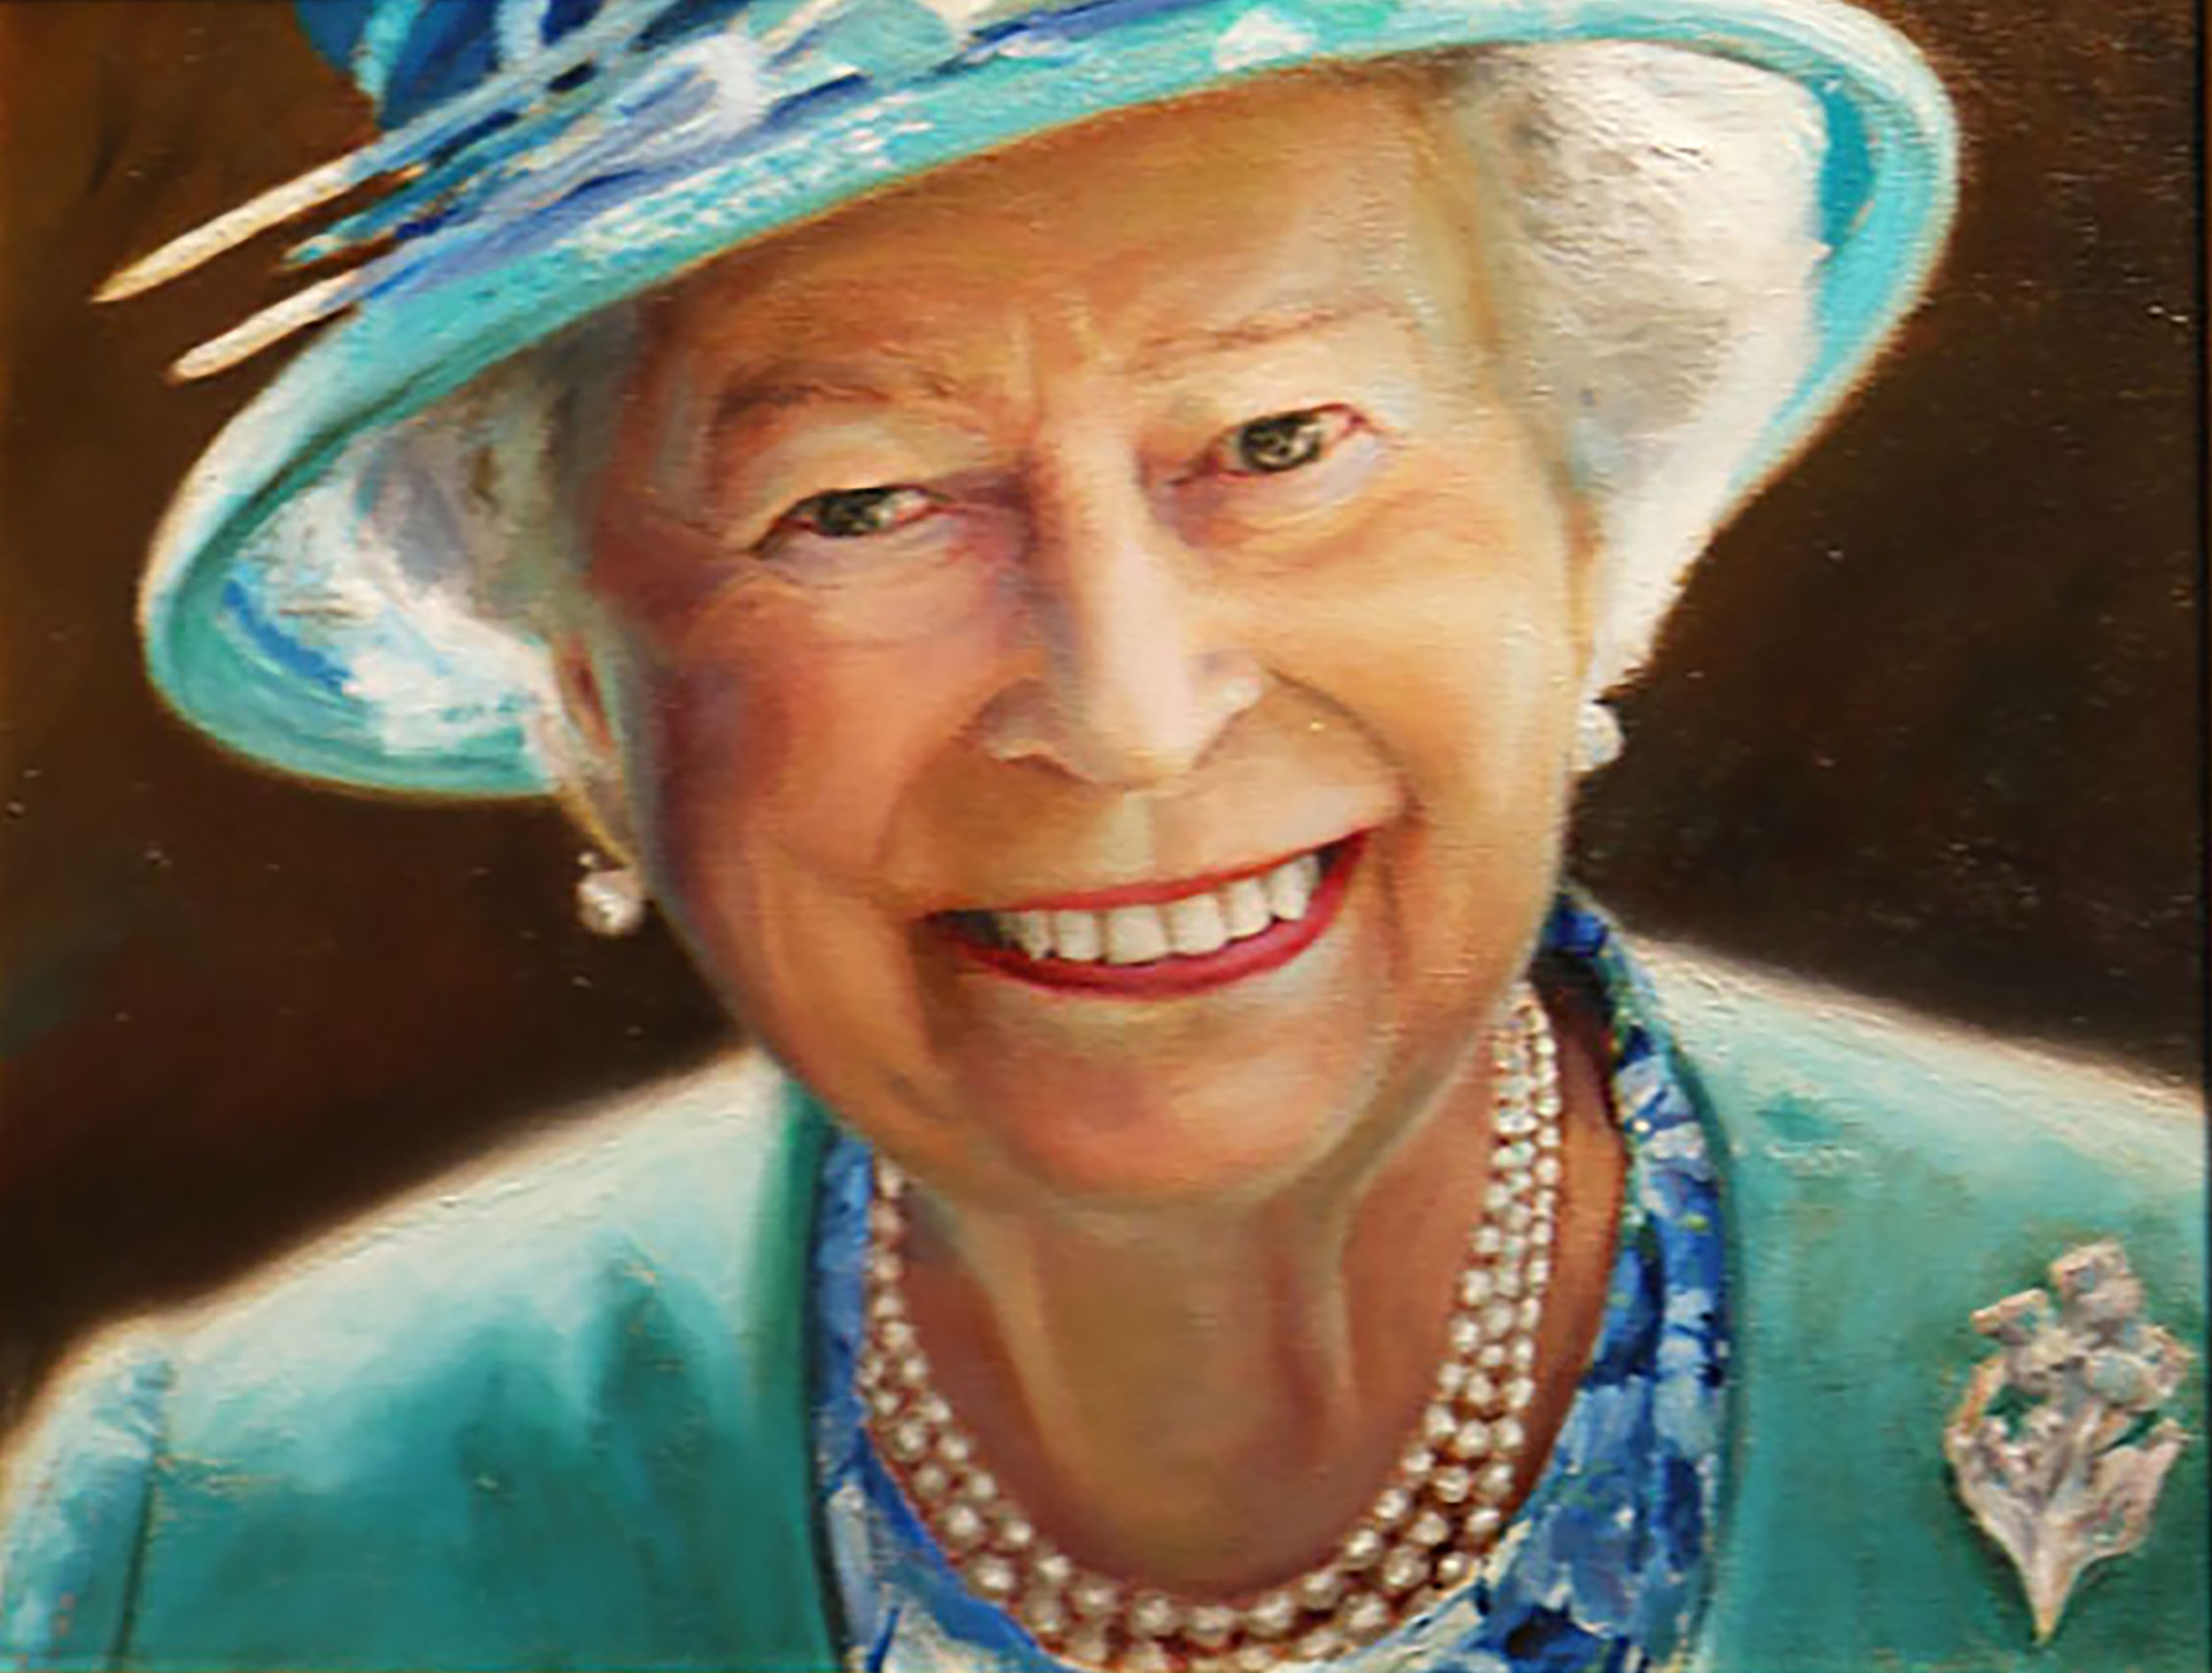 Jean-Antoine Norbert was Finalist of the Queen Elizabeth II Portrait Competition. The British Consulate General in New York organised a portrait competition in 2015 to mark the occasion of the Queen's tenure as the longest-reigning monarch in British history, with her reign surpassing at the time that of her greatgreat-grandmother, Queen Victoria. The portrait executed for thecompetition is on permanent display at the Consulate.